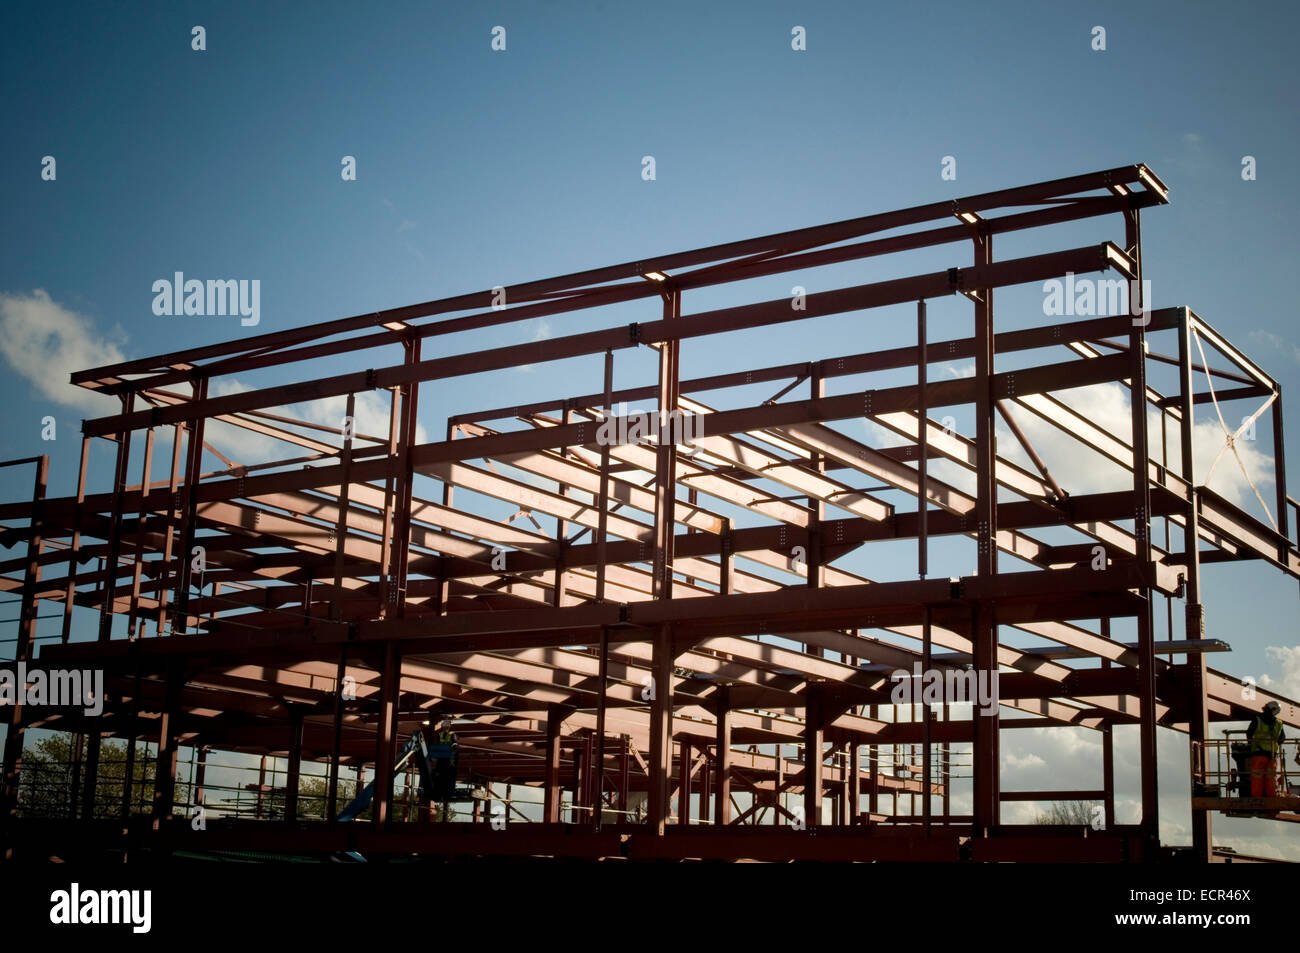 steel framed building buildings bolt bolts bolted together iron work ironworker site sites construction industry - Stock Image